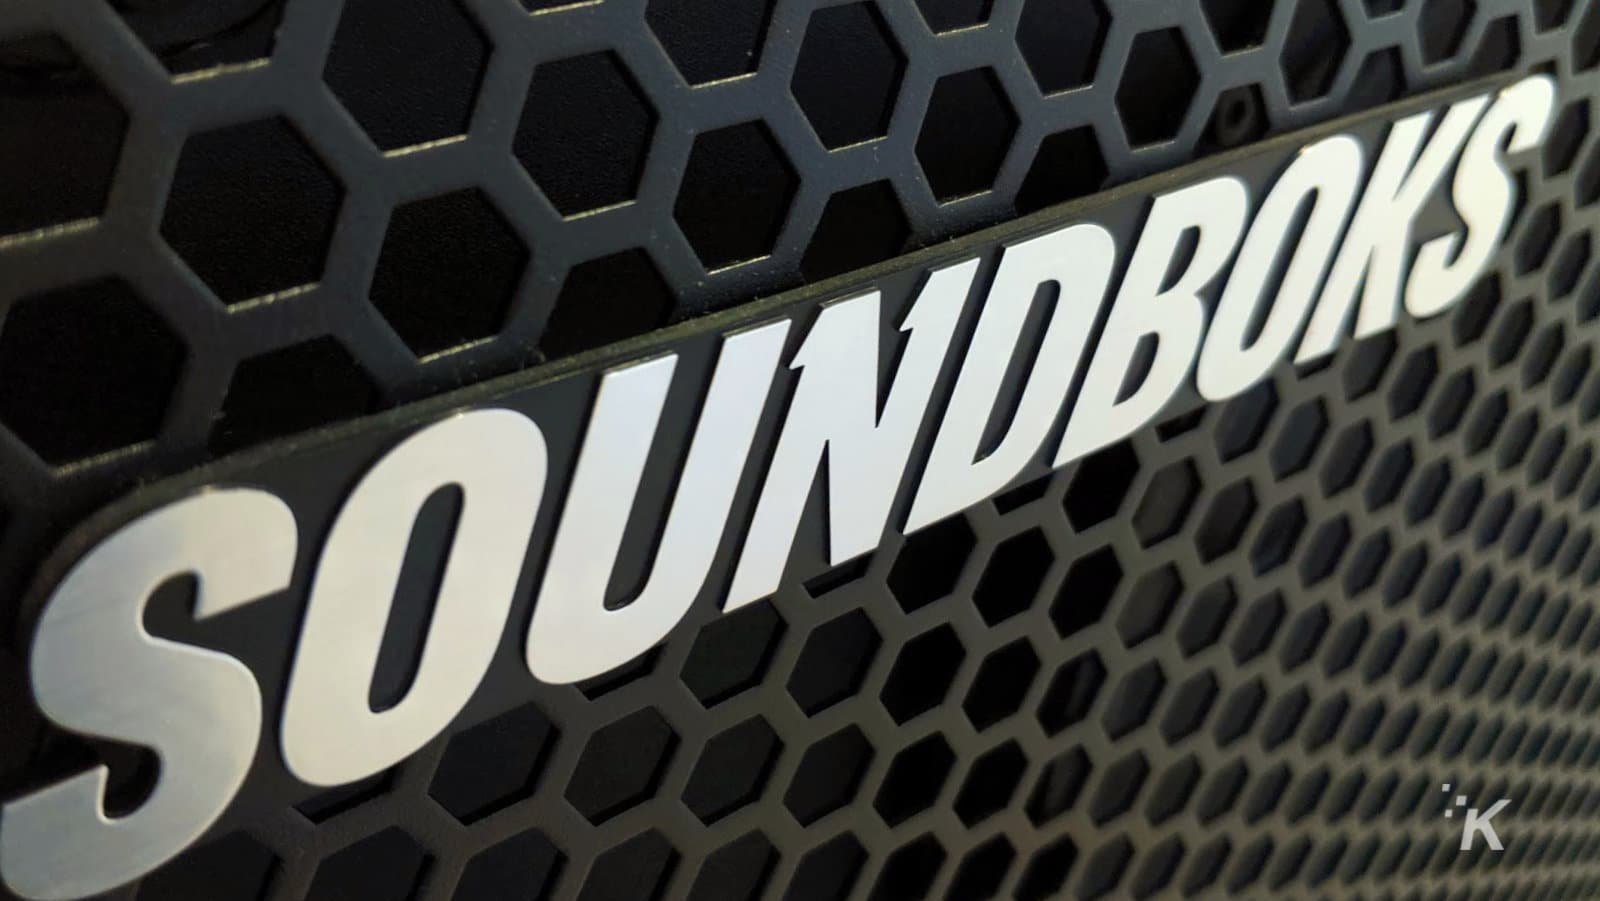 This Bluetooth speaker from Soundboks brings the rave